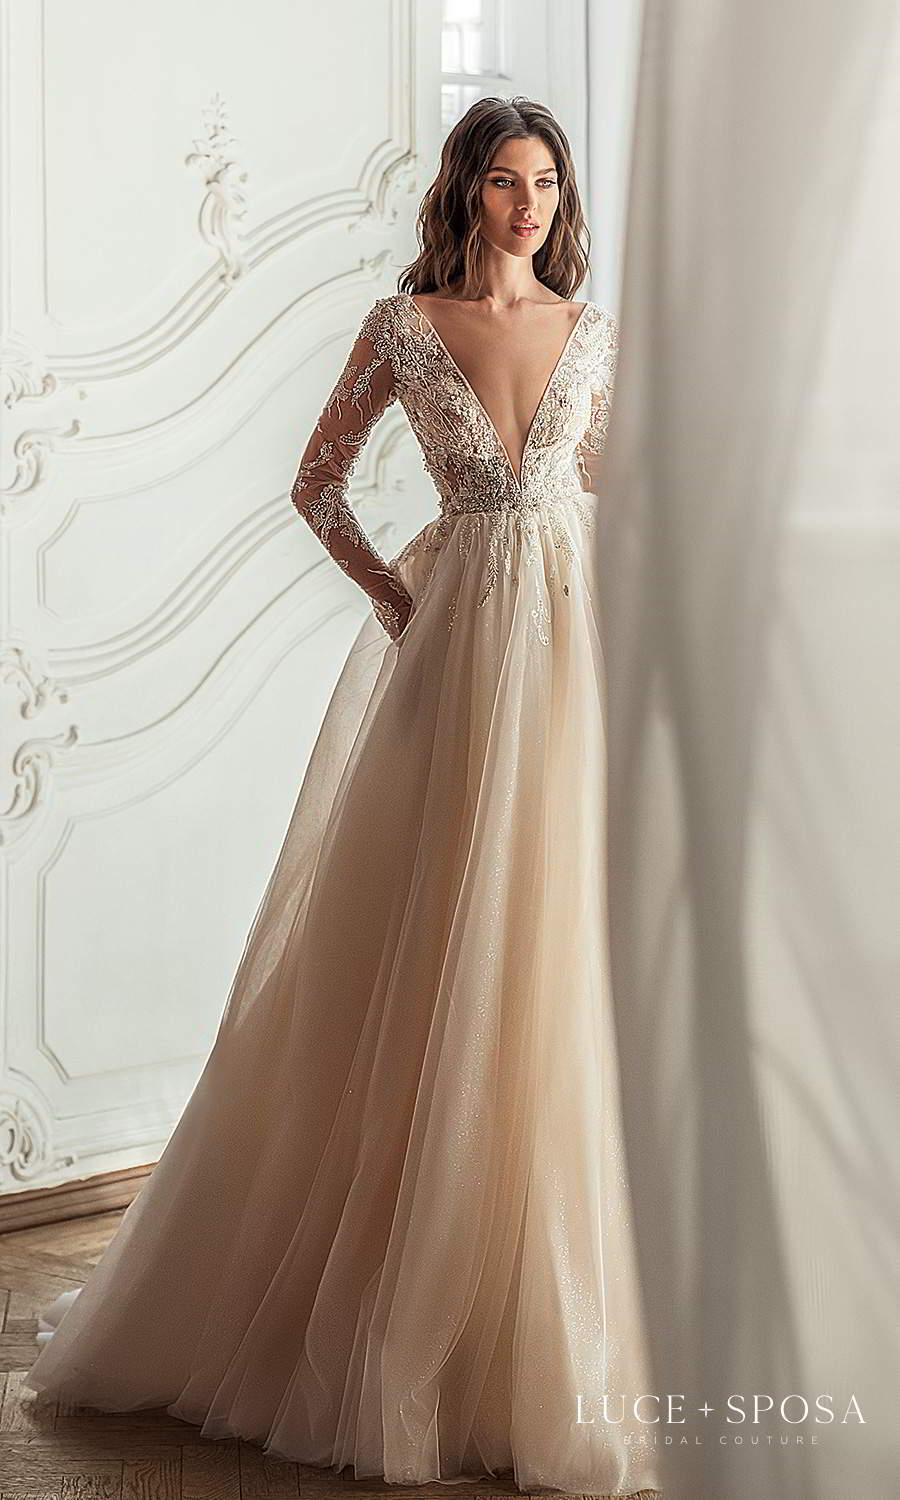 luce sposa 2021 shades of couture bridal shee long sleeves plunging v neckline heavily embellished bodice a line ball gown wedding dress chapel train (penelope) mv